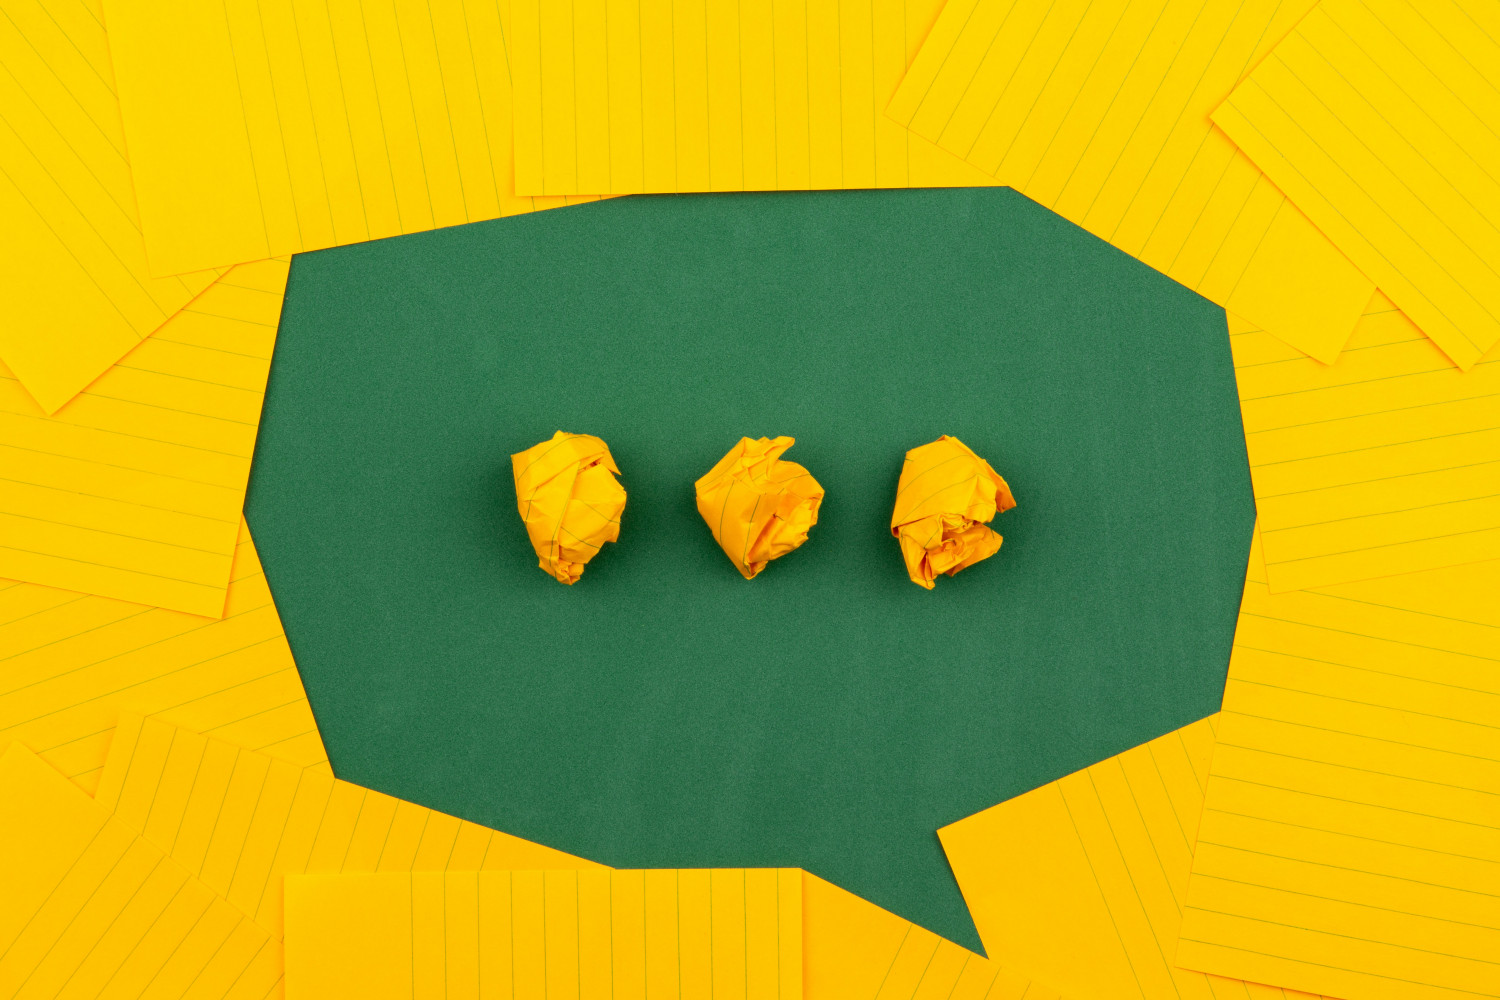 Image of a speech bubble made up up of origami